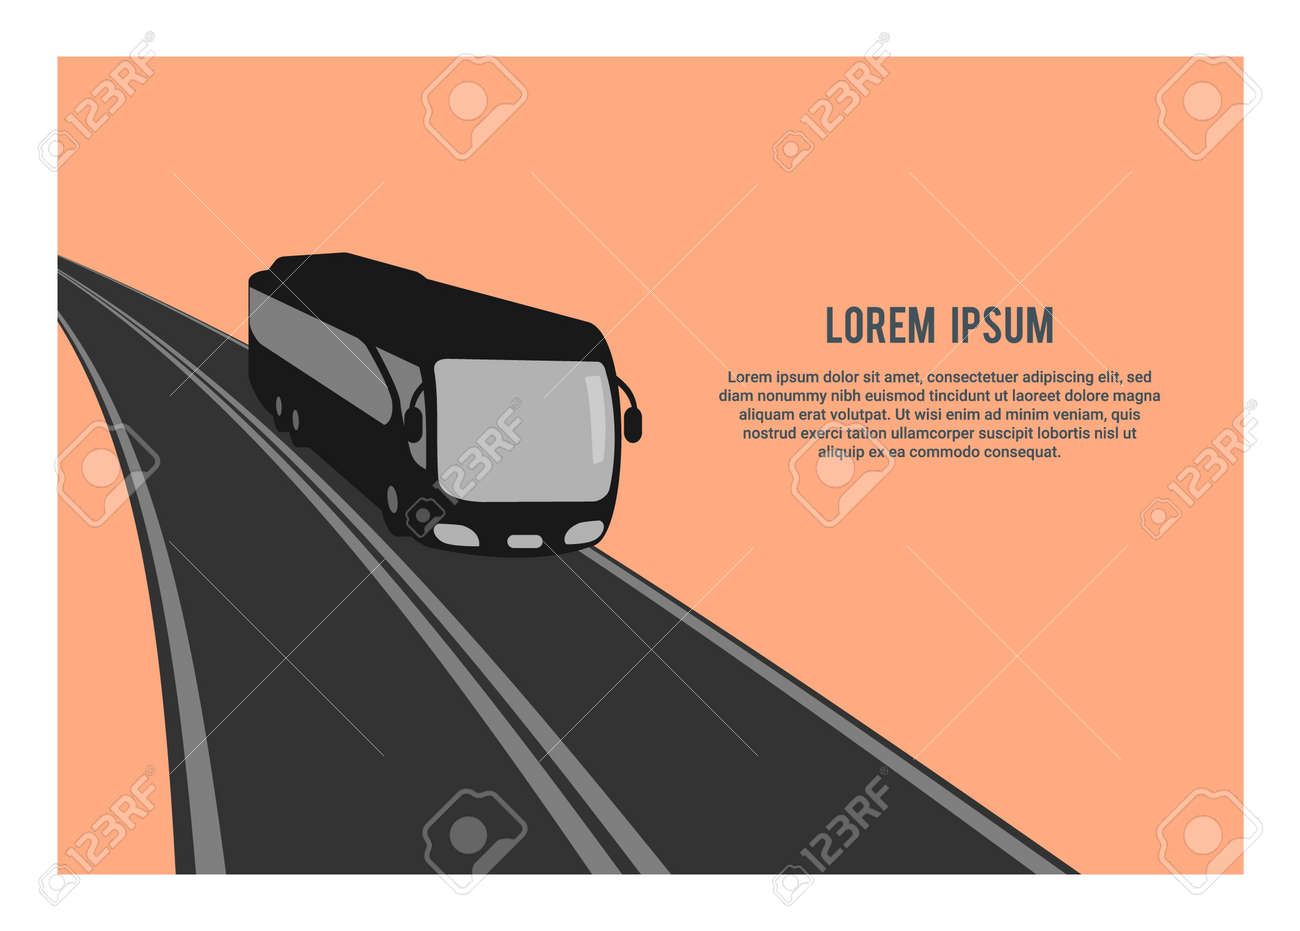 Traveling by bus. Simple silhouette illustration. - 157486033